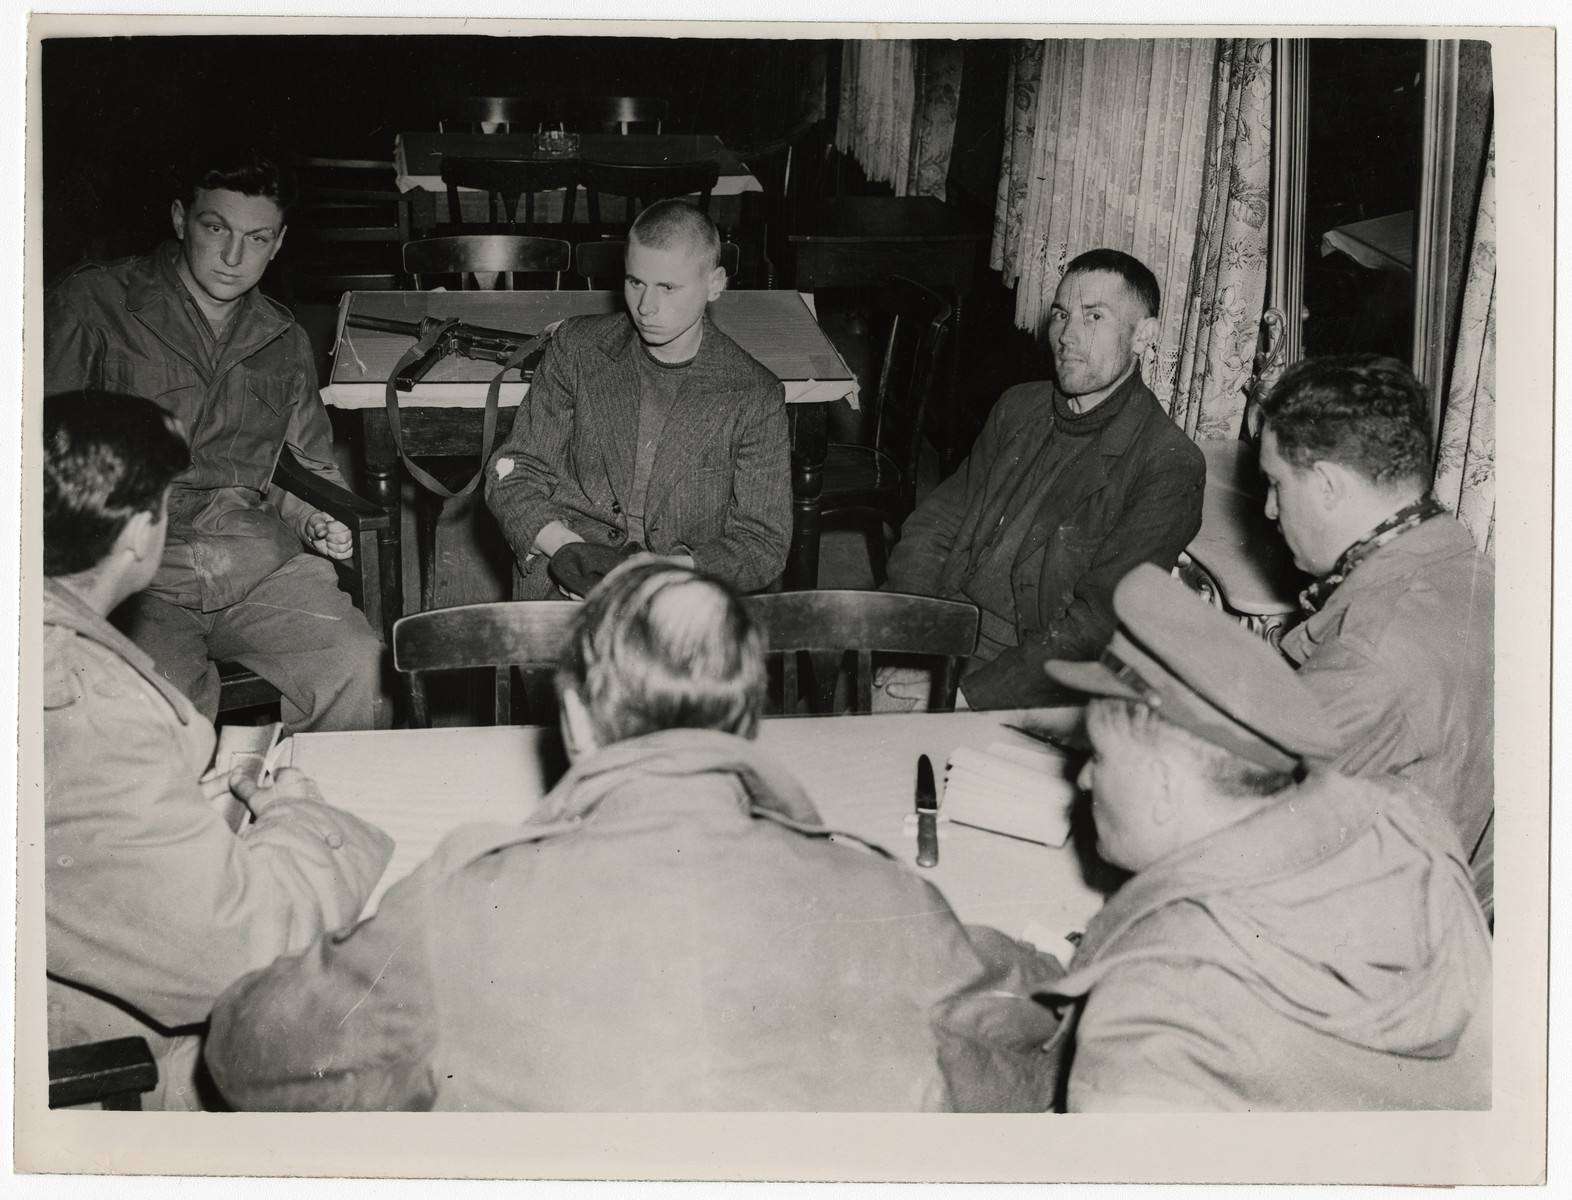 United States soldiers listen intently as political prisoners tell their story.   Original caption reads:  The Nazis Burn the Living When troops of the Ninth U.S. Army reached Gardelegen, Germany, they found the still- smoldering bodies of more than 1,000 political prisoners whom the Nazis had forced into a fuel soaked barn and burned to death. A mass of human flesh was smoking when American troops arrived on the scene and discovered from fugitives of the concentration camp that the atrocity had been committed by German troops and Luftwaffe personnel from a nearby airfield. Residents of the town of Gardelegen, 27 miles northwest of Madgeburg, were immediately compelled by U.S. officers to disinter approximately 700 partially buried dead and to bury all the charred victims.   THIS PHOTO SHOWS: A U. S. soldier (left) listens with clenched fists as two survivors of the barn funeral pyre tell their stories to war correspondents. Vladimire Wognia (center) of Lwow, Poland, imprisoned for releasing Polish prisoners being sent to Germany in 1942, ran through a hole in the burning barm, was shot at and ran back. Later, he escaped again and shouted in German to the Nazi guards to stop shooting. The brief confusion allowed him to escape in the dark. Eugene Sieradzki (right) kept alive by keeping his mouth to a hole in the barn. He was covered with bodies from Friday, April 13, until Sunday.